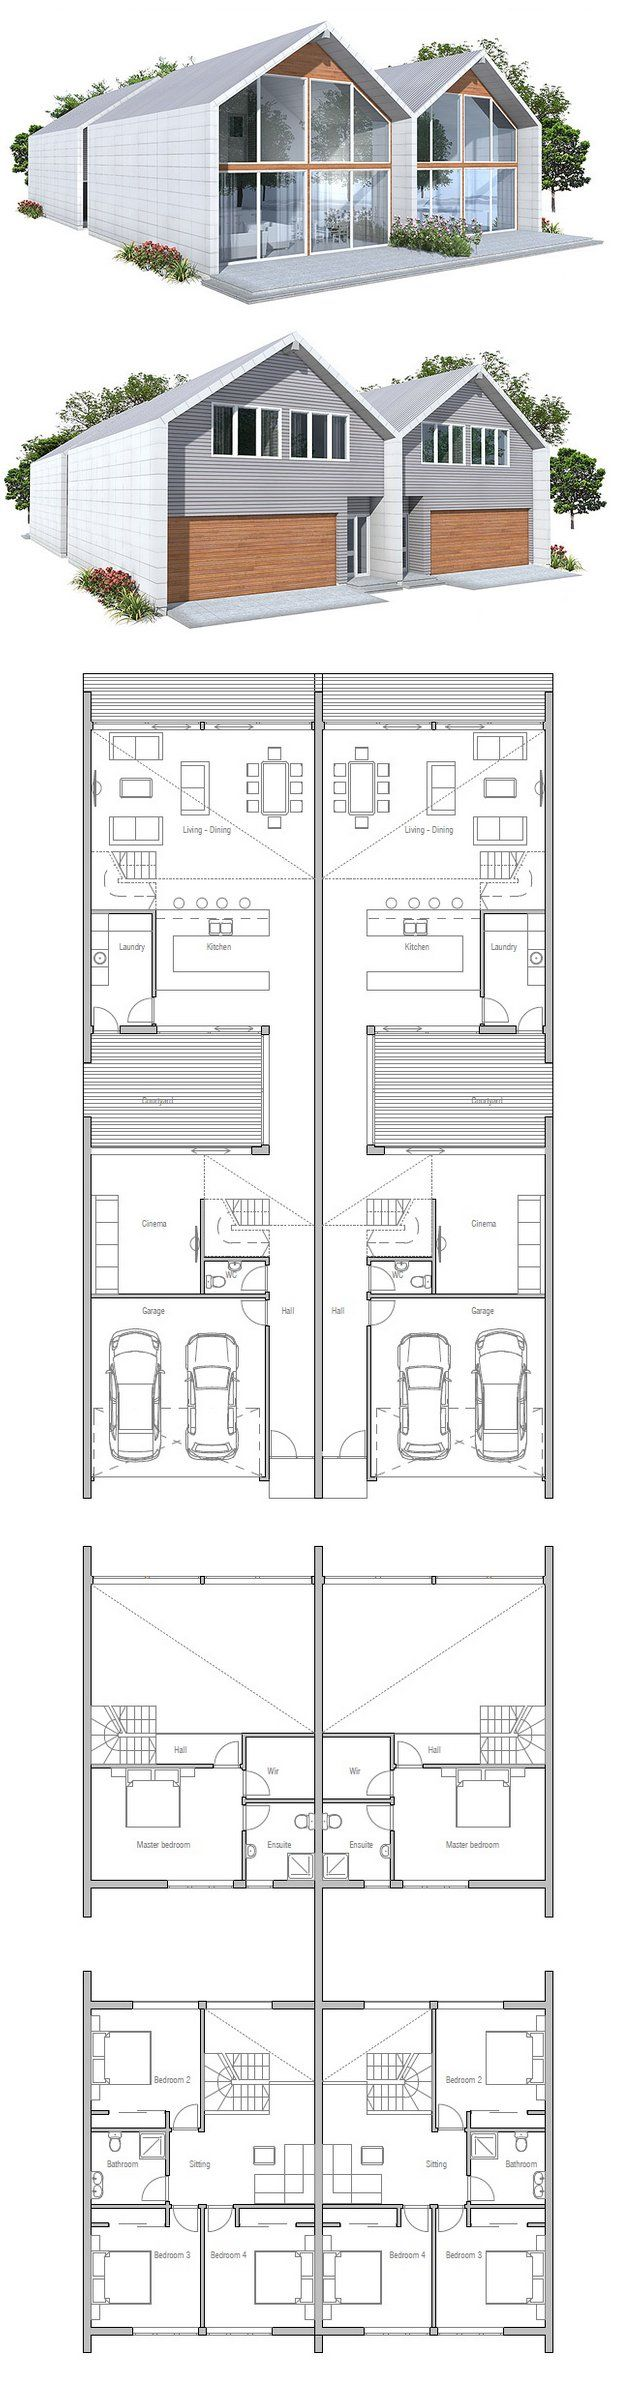 Duplex house plan to narrow lot 2 bed plans Narrow lot duplex